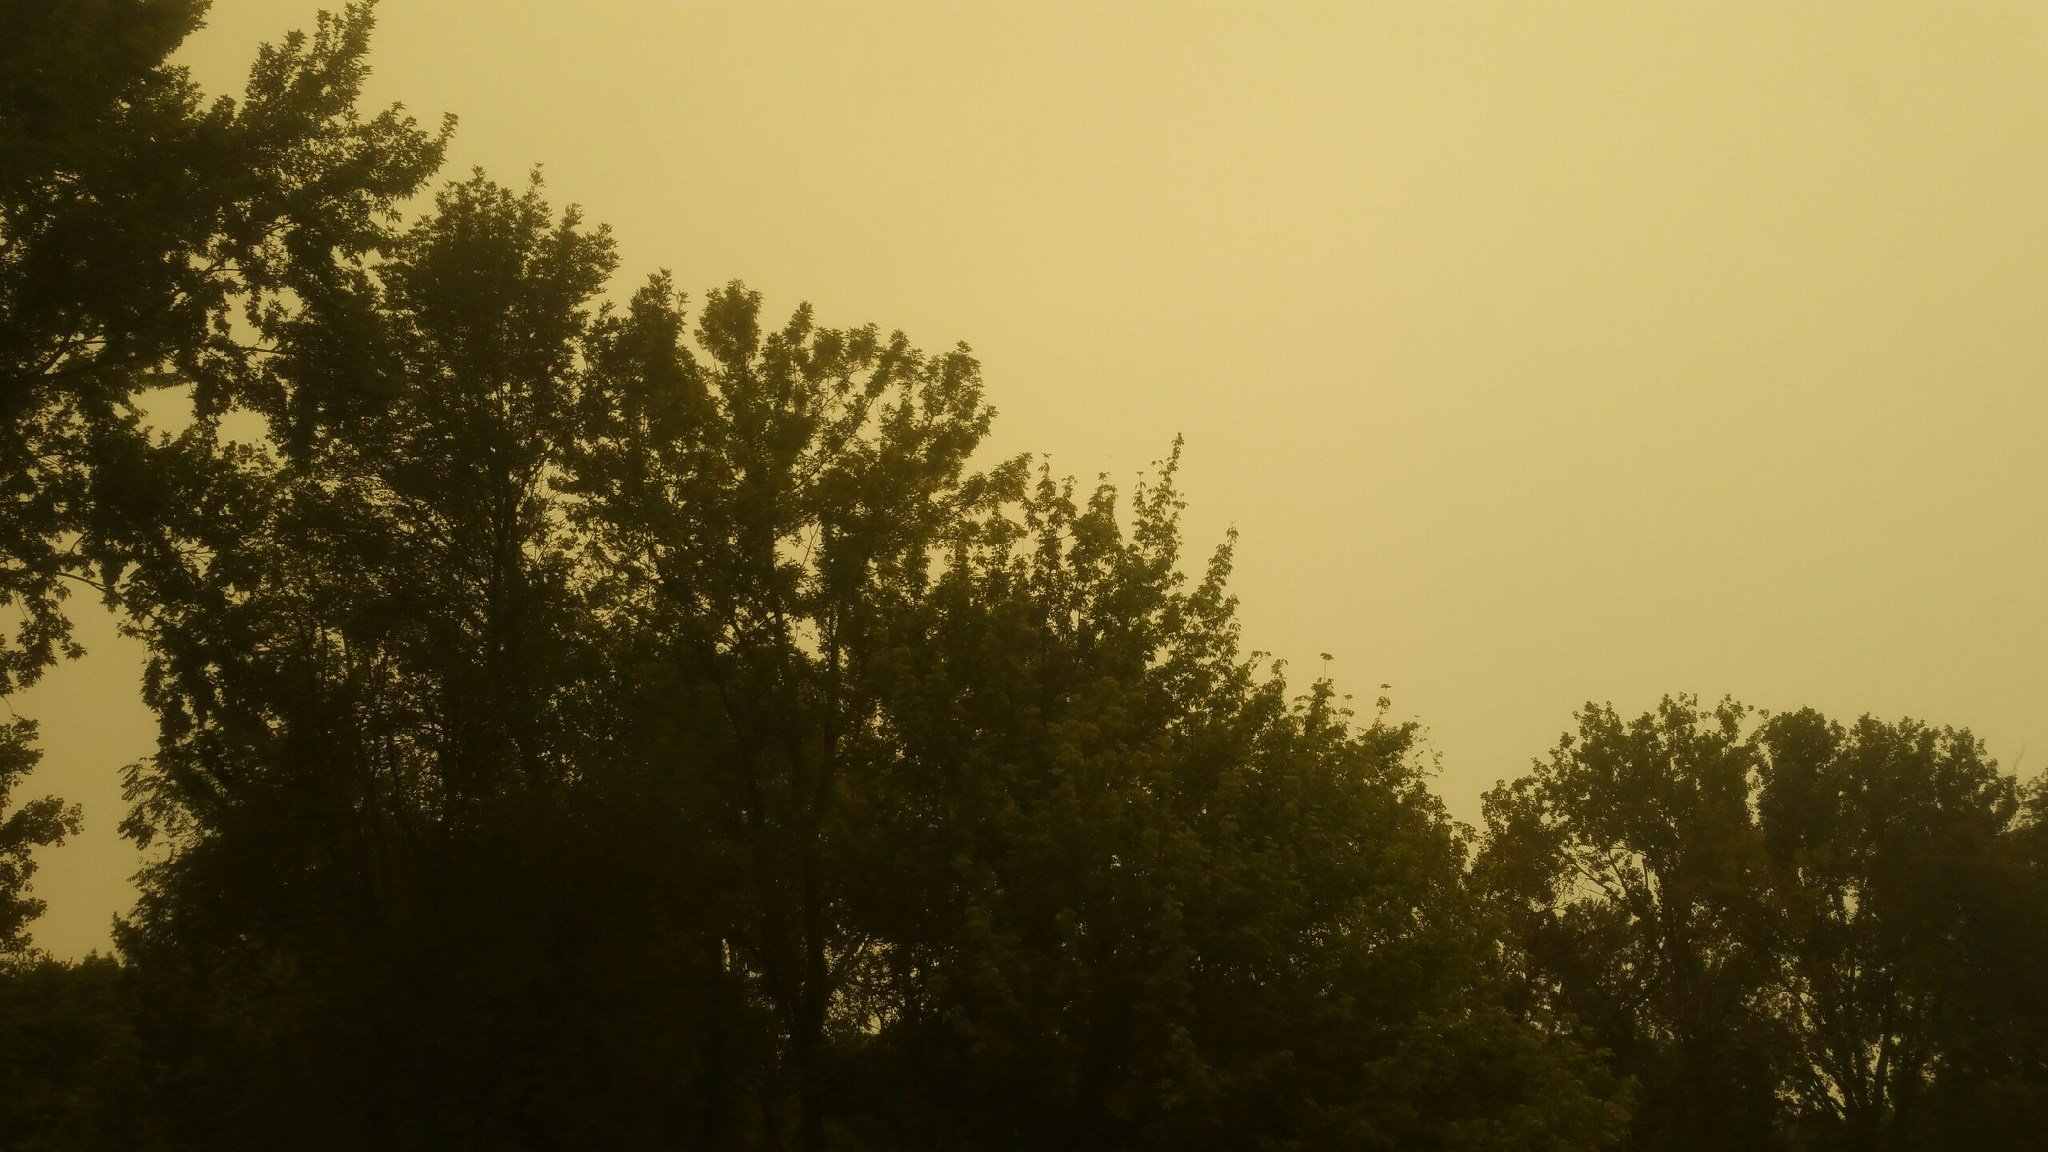 Submitted photo showing yellow-tinted skies in Quincy on Monday afternoon.